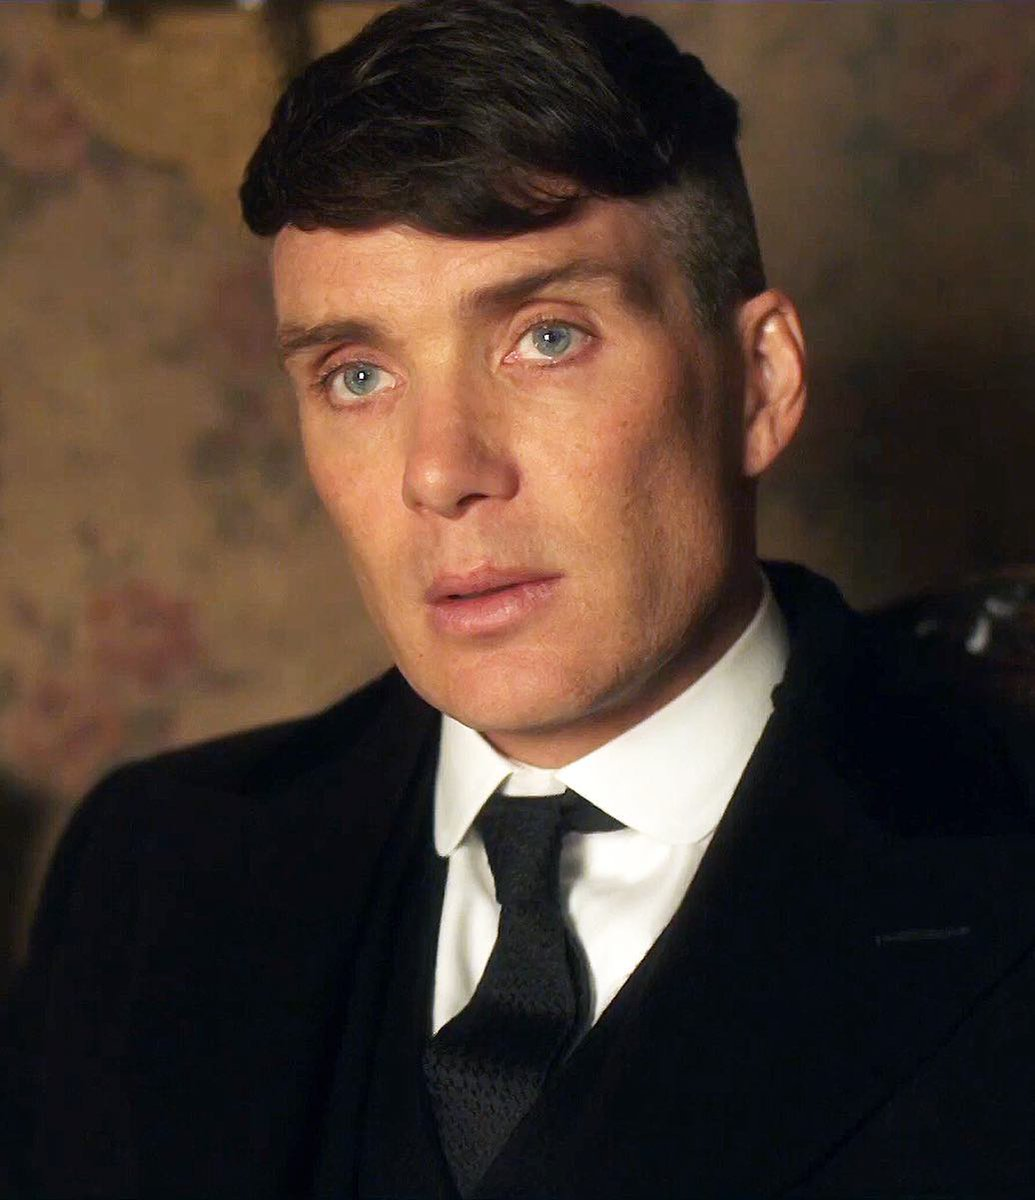 test Twitter Media - I am ready for this face to bless my screen again soon❤️❤️❤️ @ThePeakyBlinder #TommyShelby #CillianMurphy https://t.co/3Vqx4MIU9b